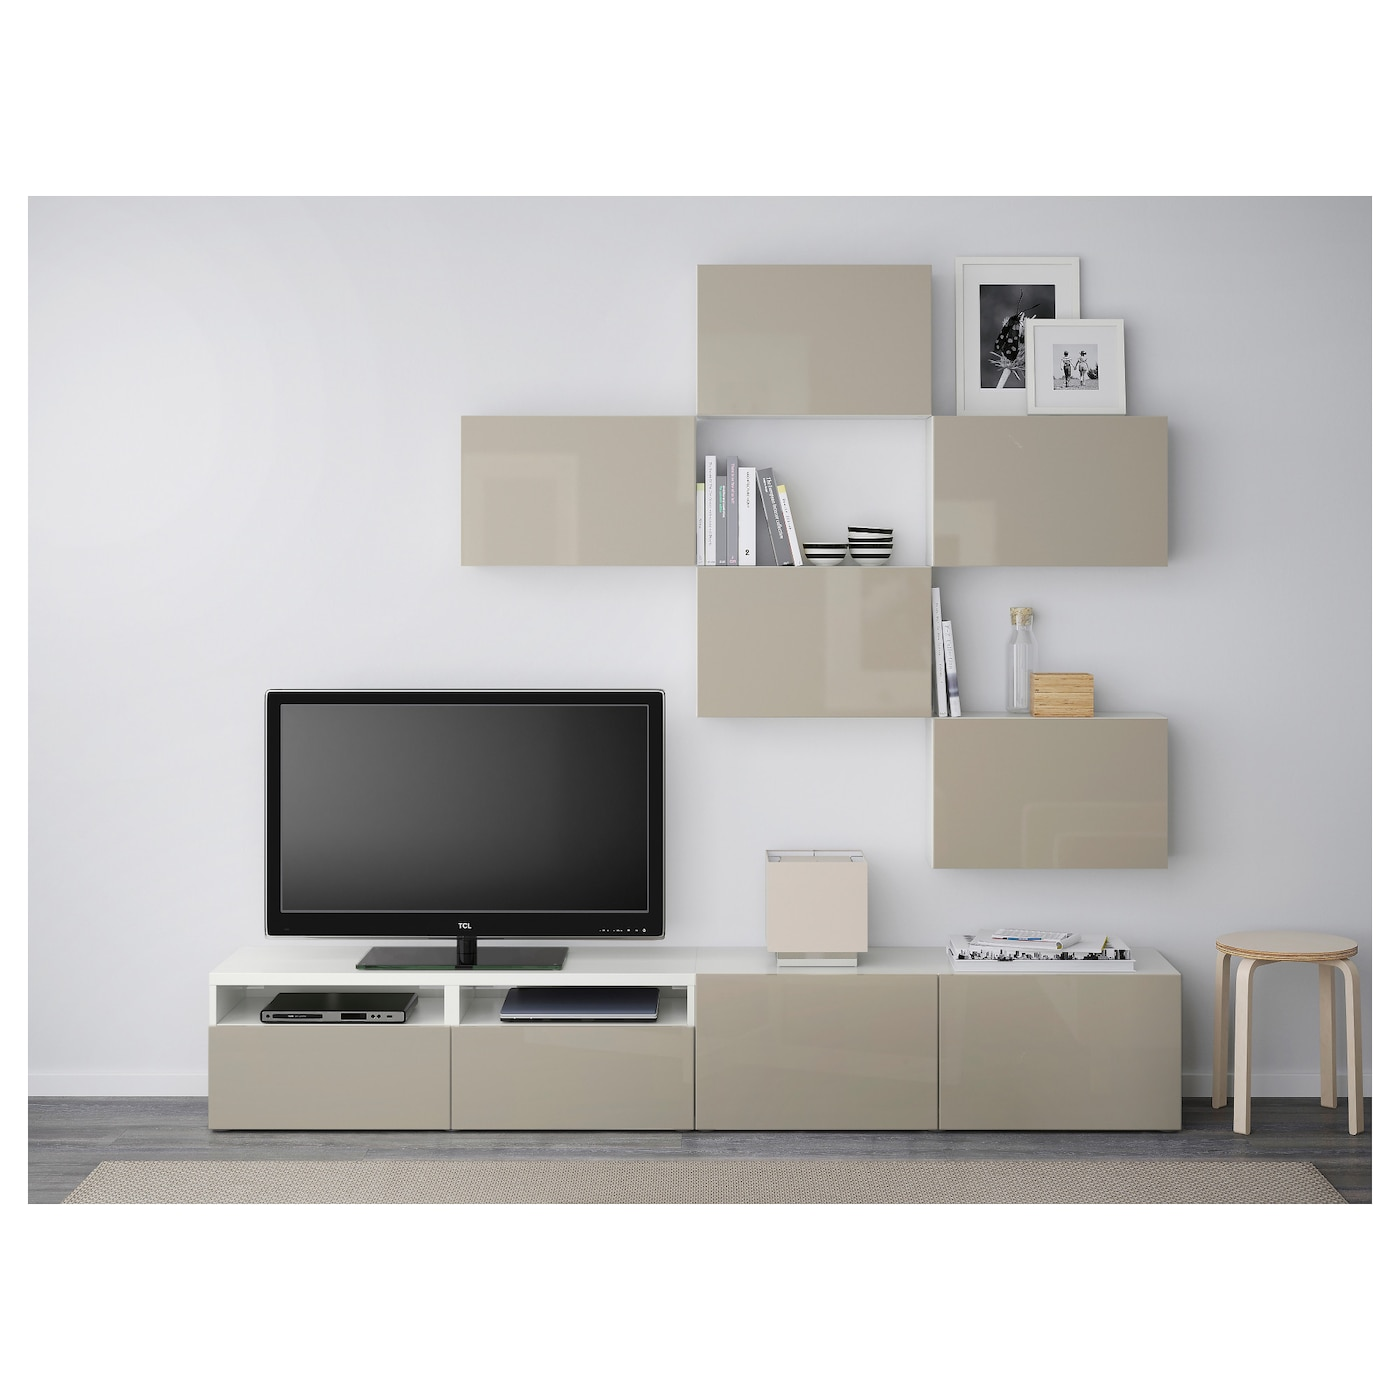 Best Combinaison Meuble Tv Blanc Selsviken Brillant Beige 240×20  # Meuble Tv Beige Blanc